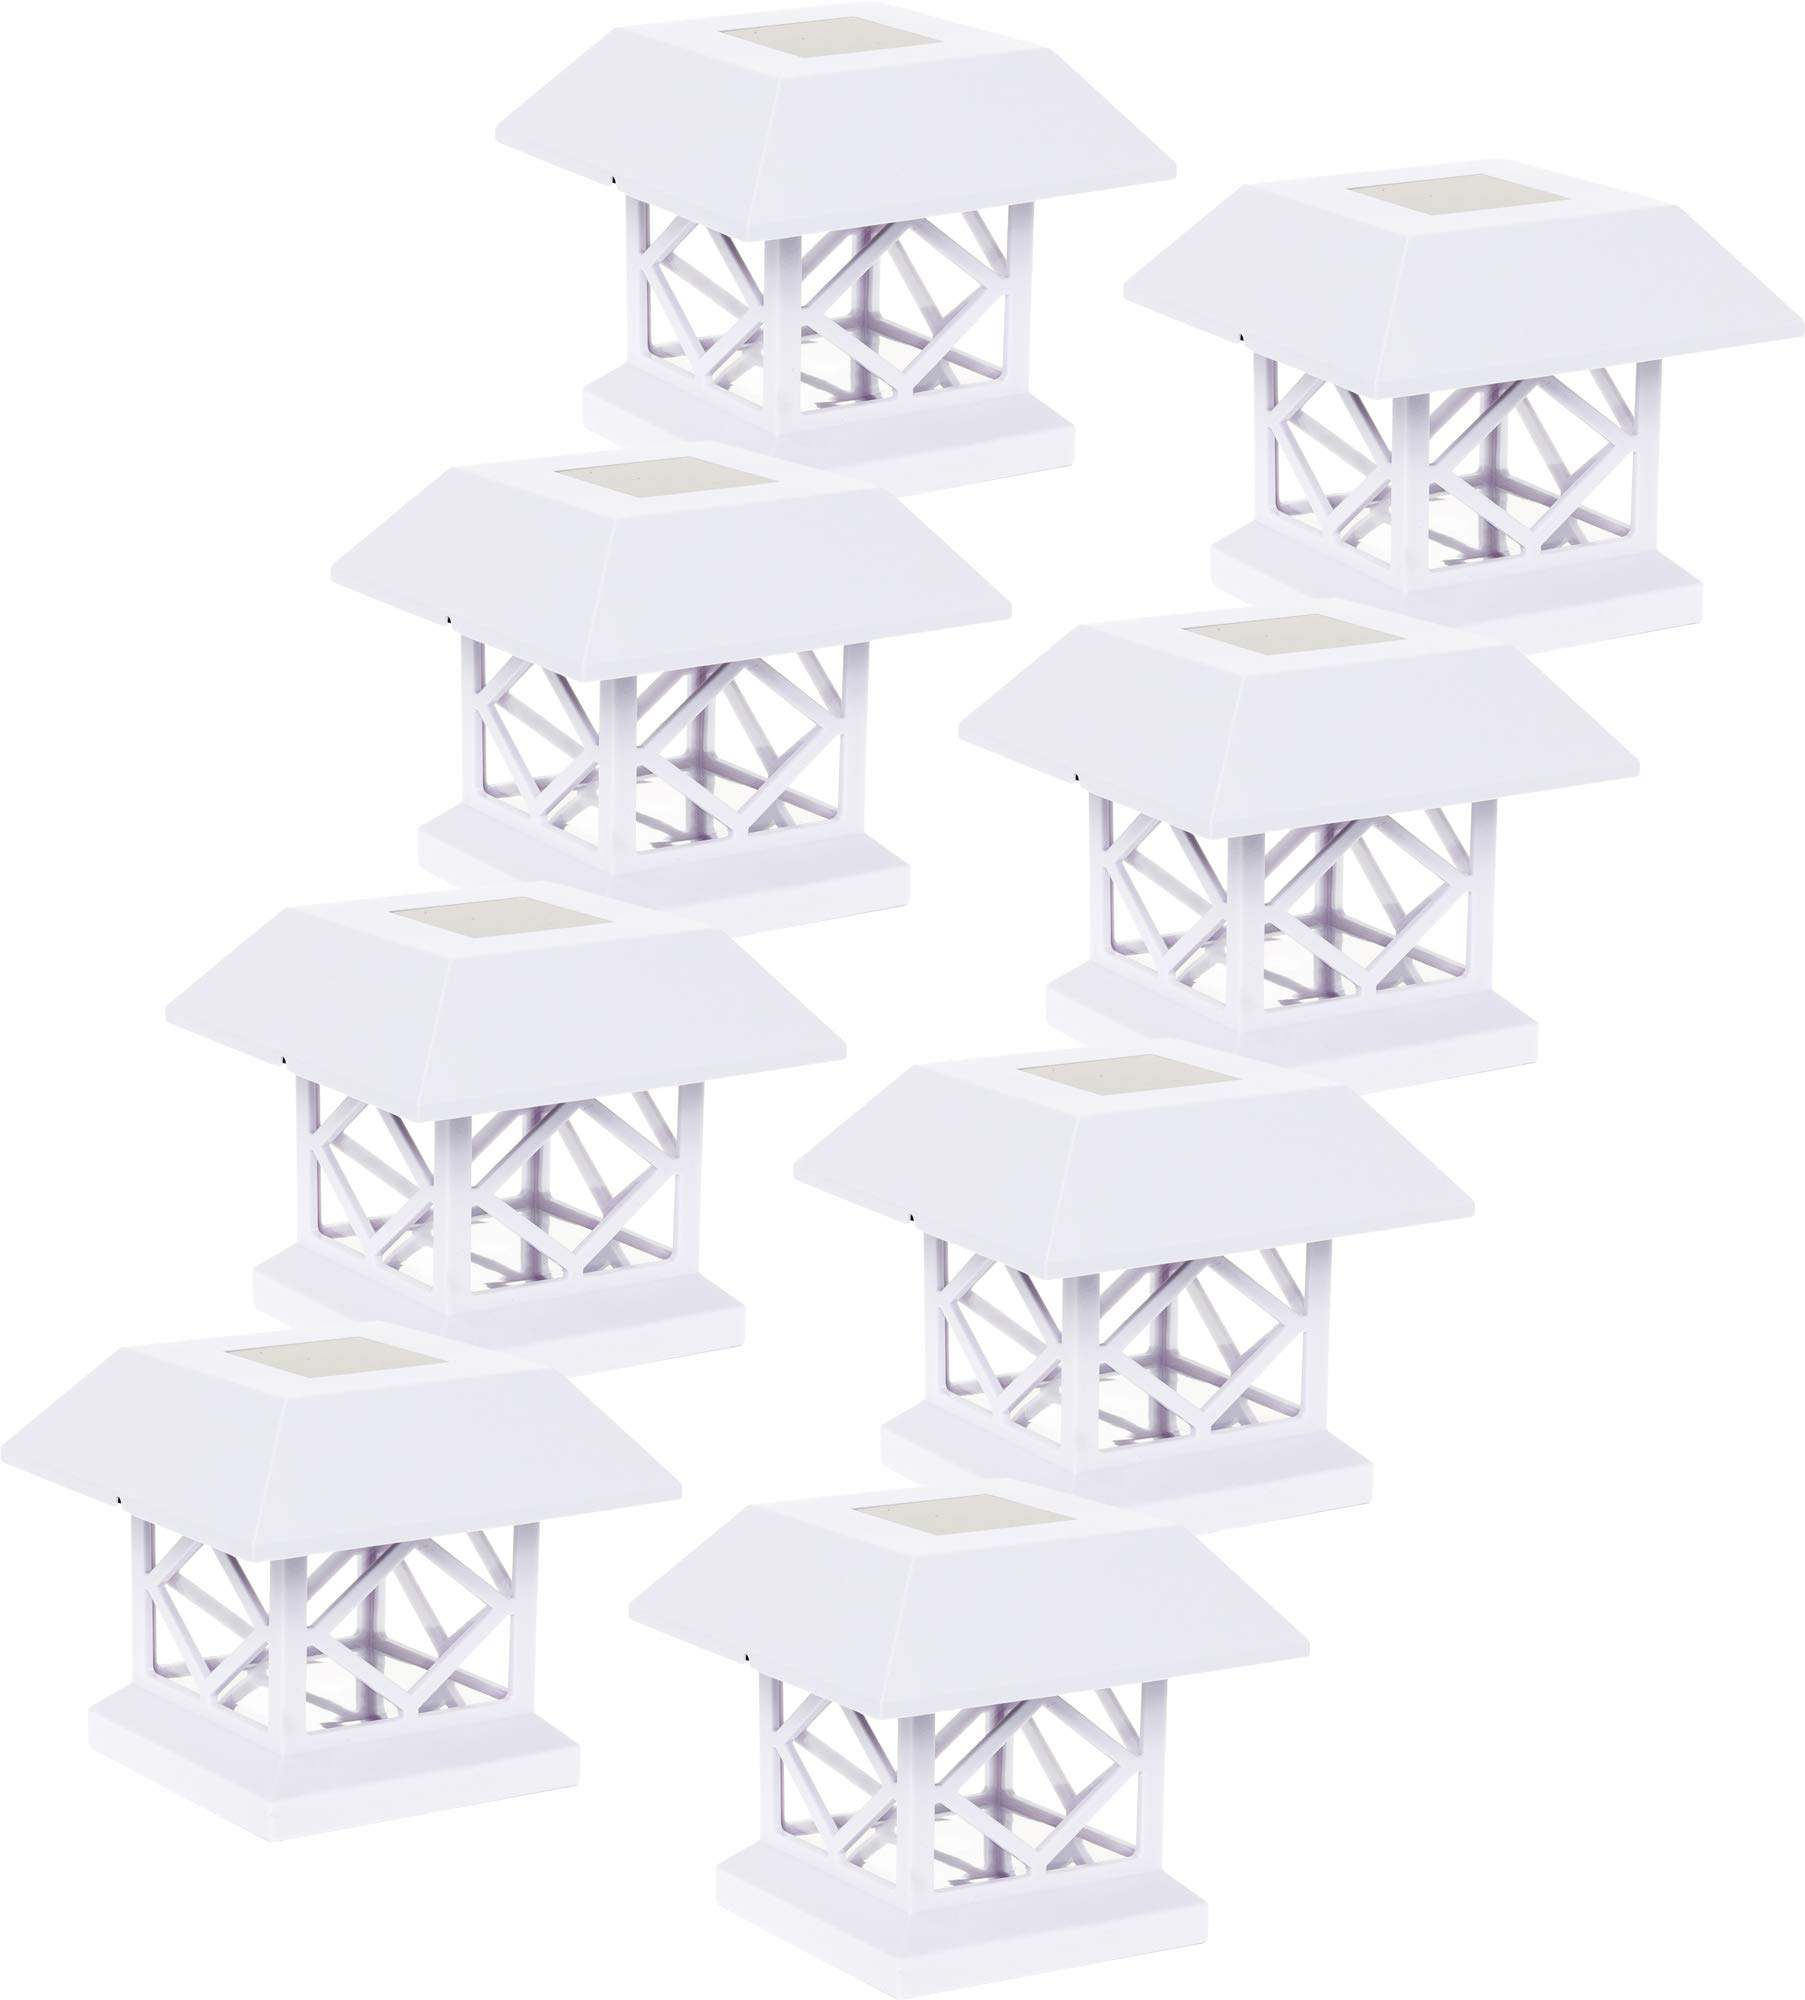 GreenLighting Outdoor Summit Solar Post Cap Light for 4x4 Wood Posts 8 Pack (White)